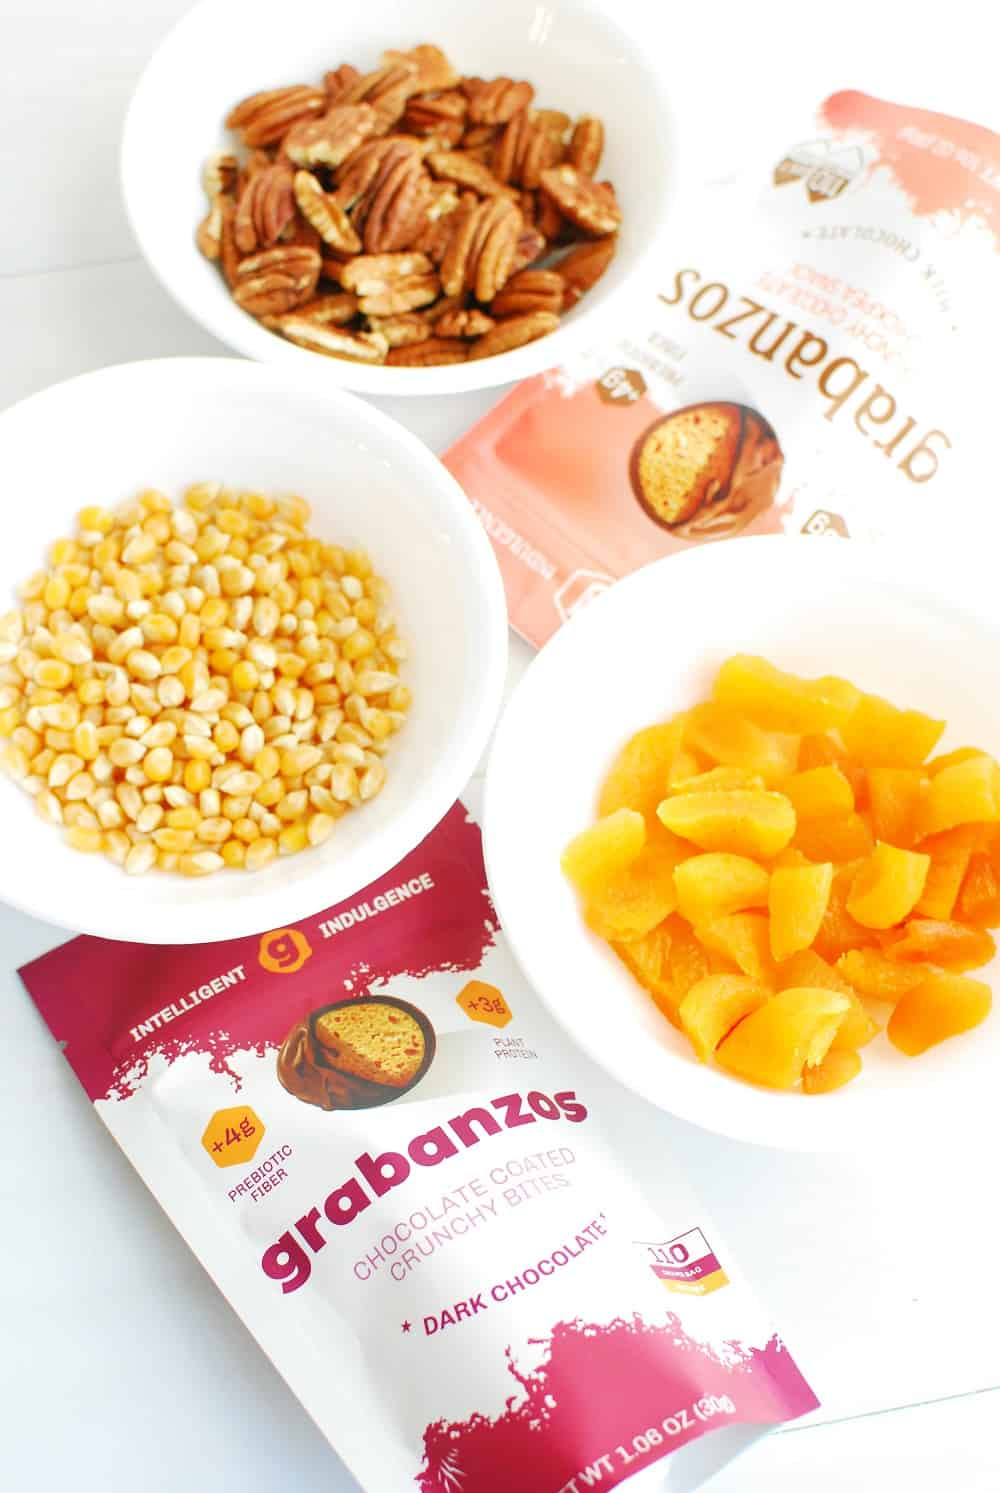 a bag of grabanzos, a bowl of popcorn kernels, a bowl of dried apricots, and a bowl of pecans